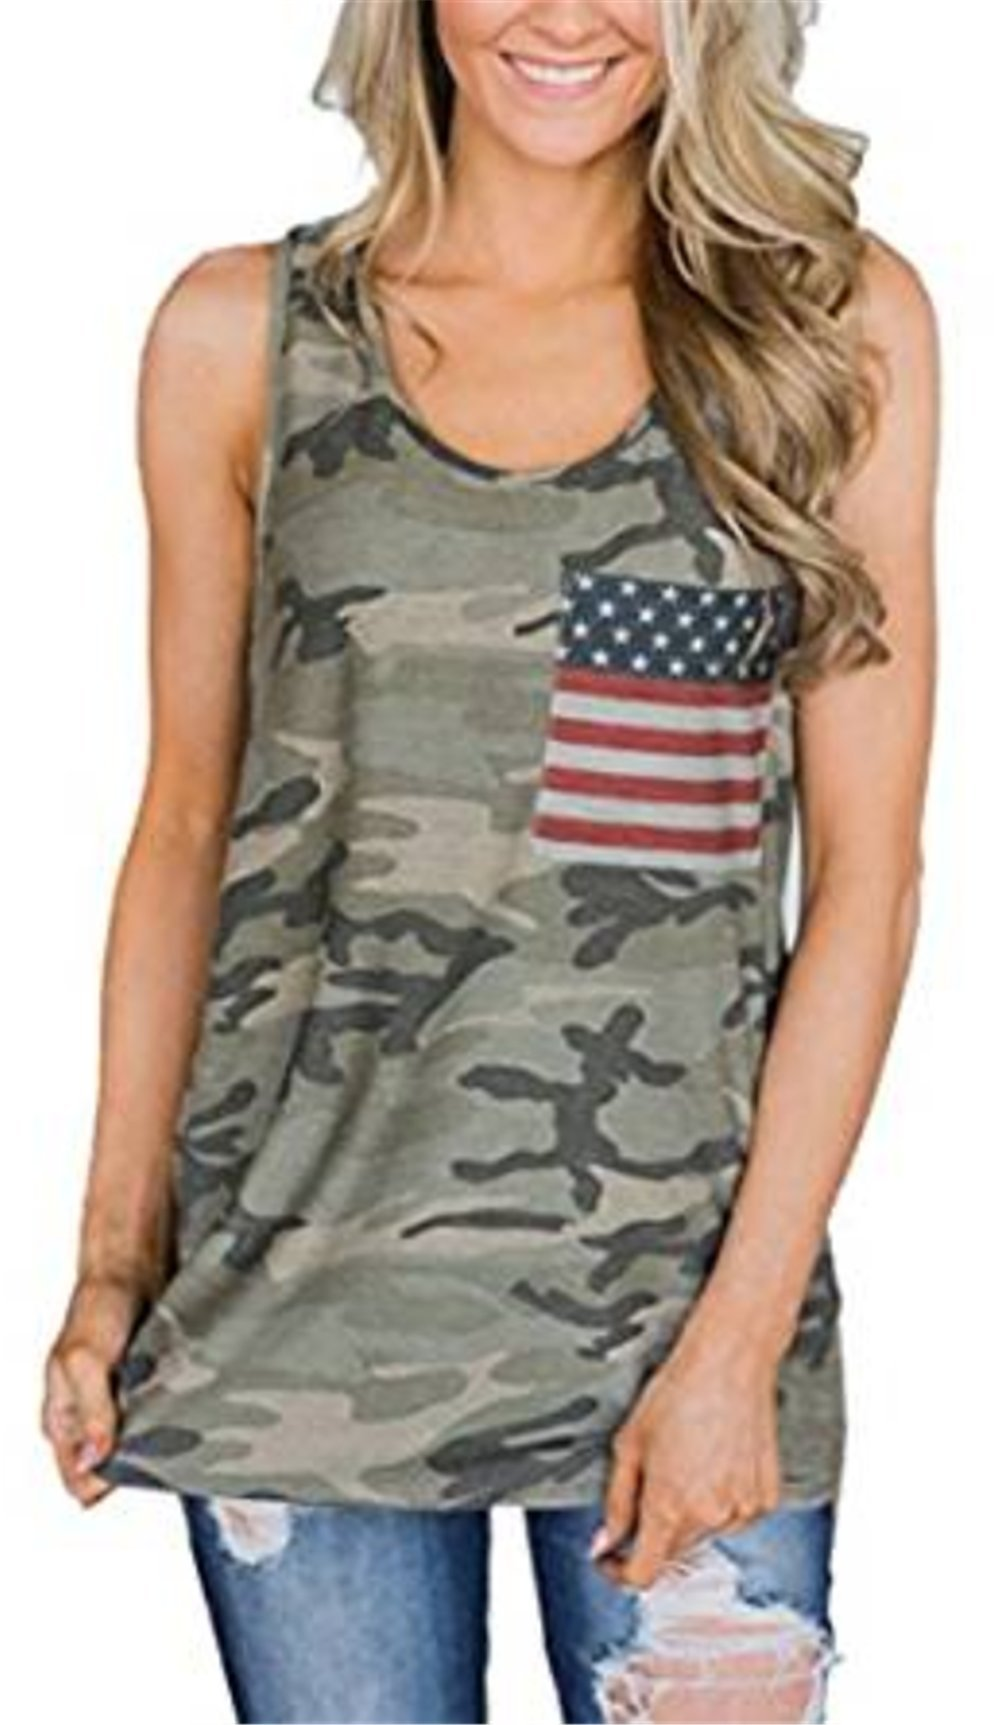 BANGELY Womens Camouflage Casual Racerback Tank Tops American Flag Print Sleeveless Camo Vest Shirts Size Medium (Green)